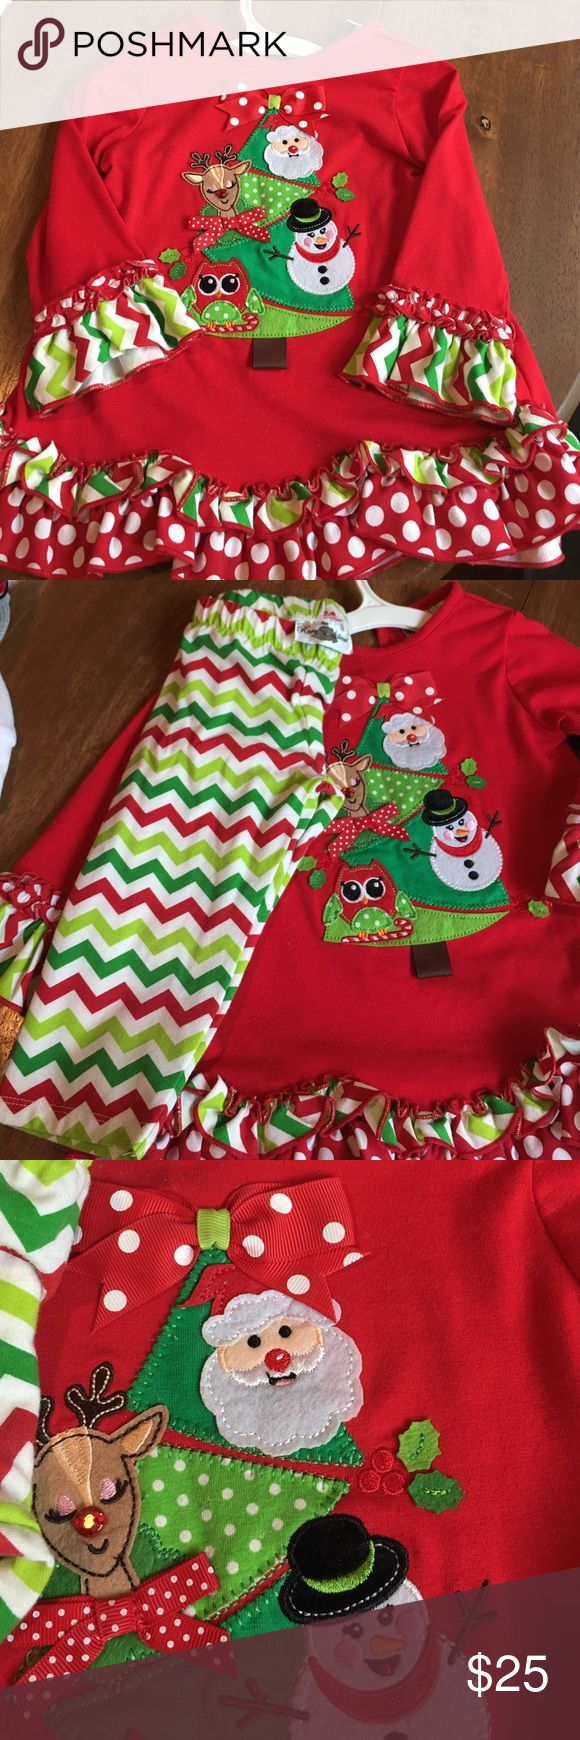 Rare Editions Christmas set 2t dress set, worn once, comes with green, red, white, chevron pants. Rare Editions Matching Sets